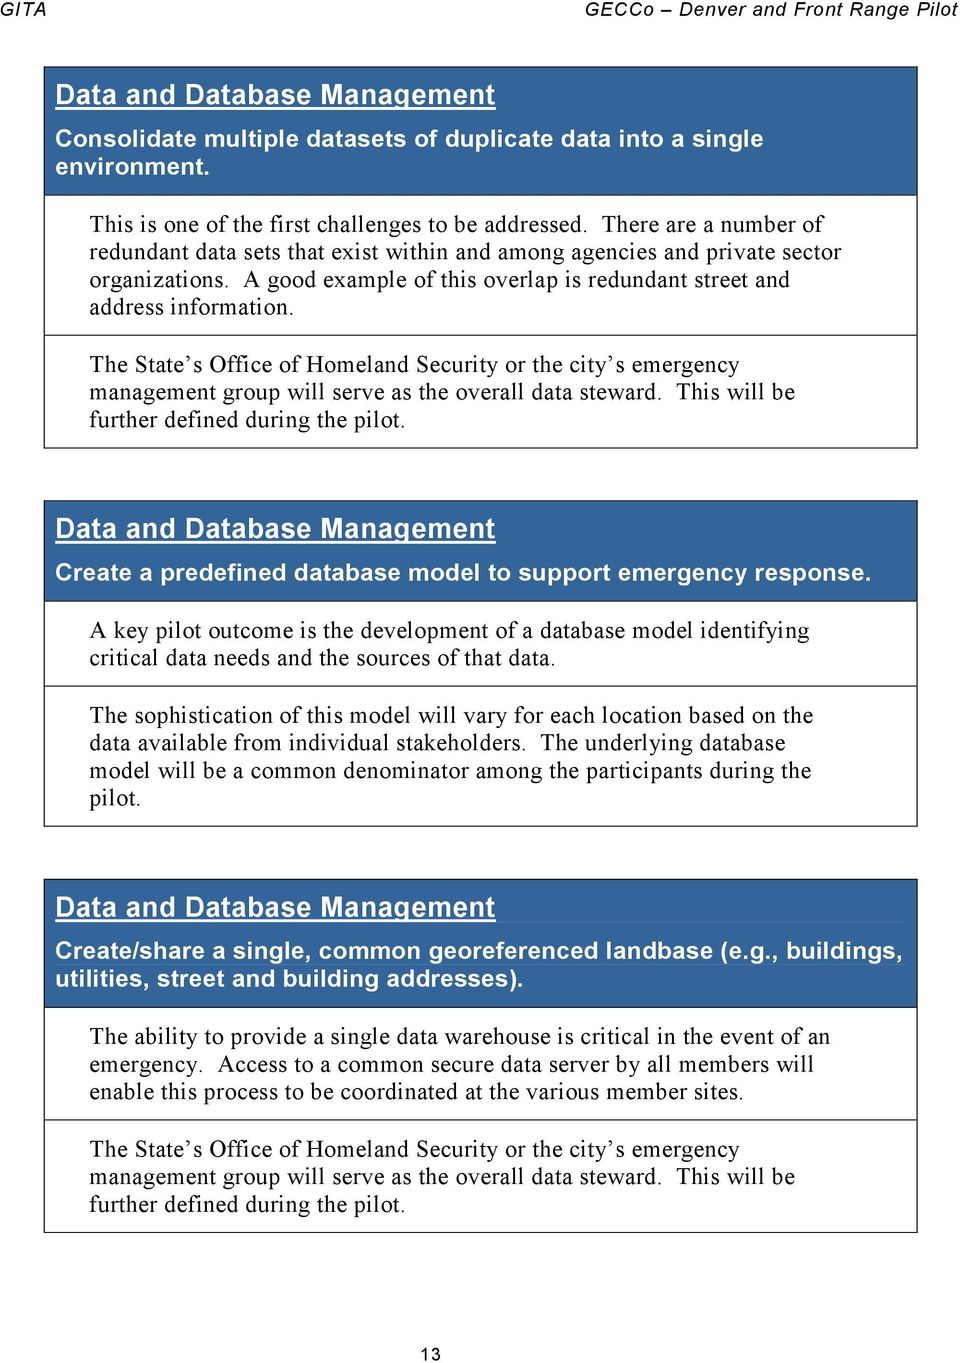 The State s Office of Homeland Security or the city s emergency management group will serve as the overall data steward. This will be further defined during the pilot.